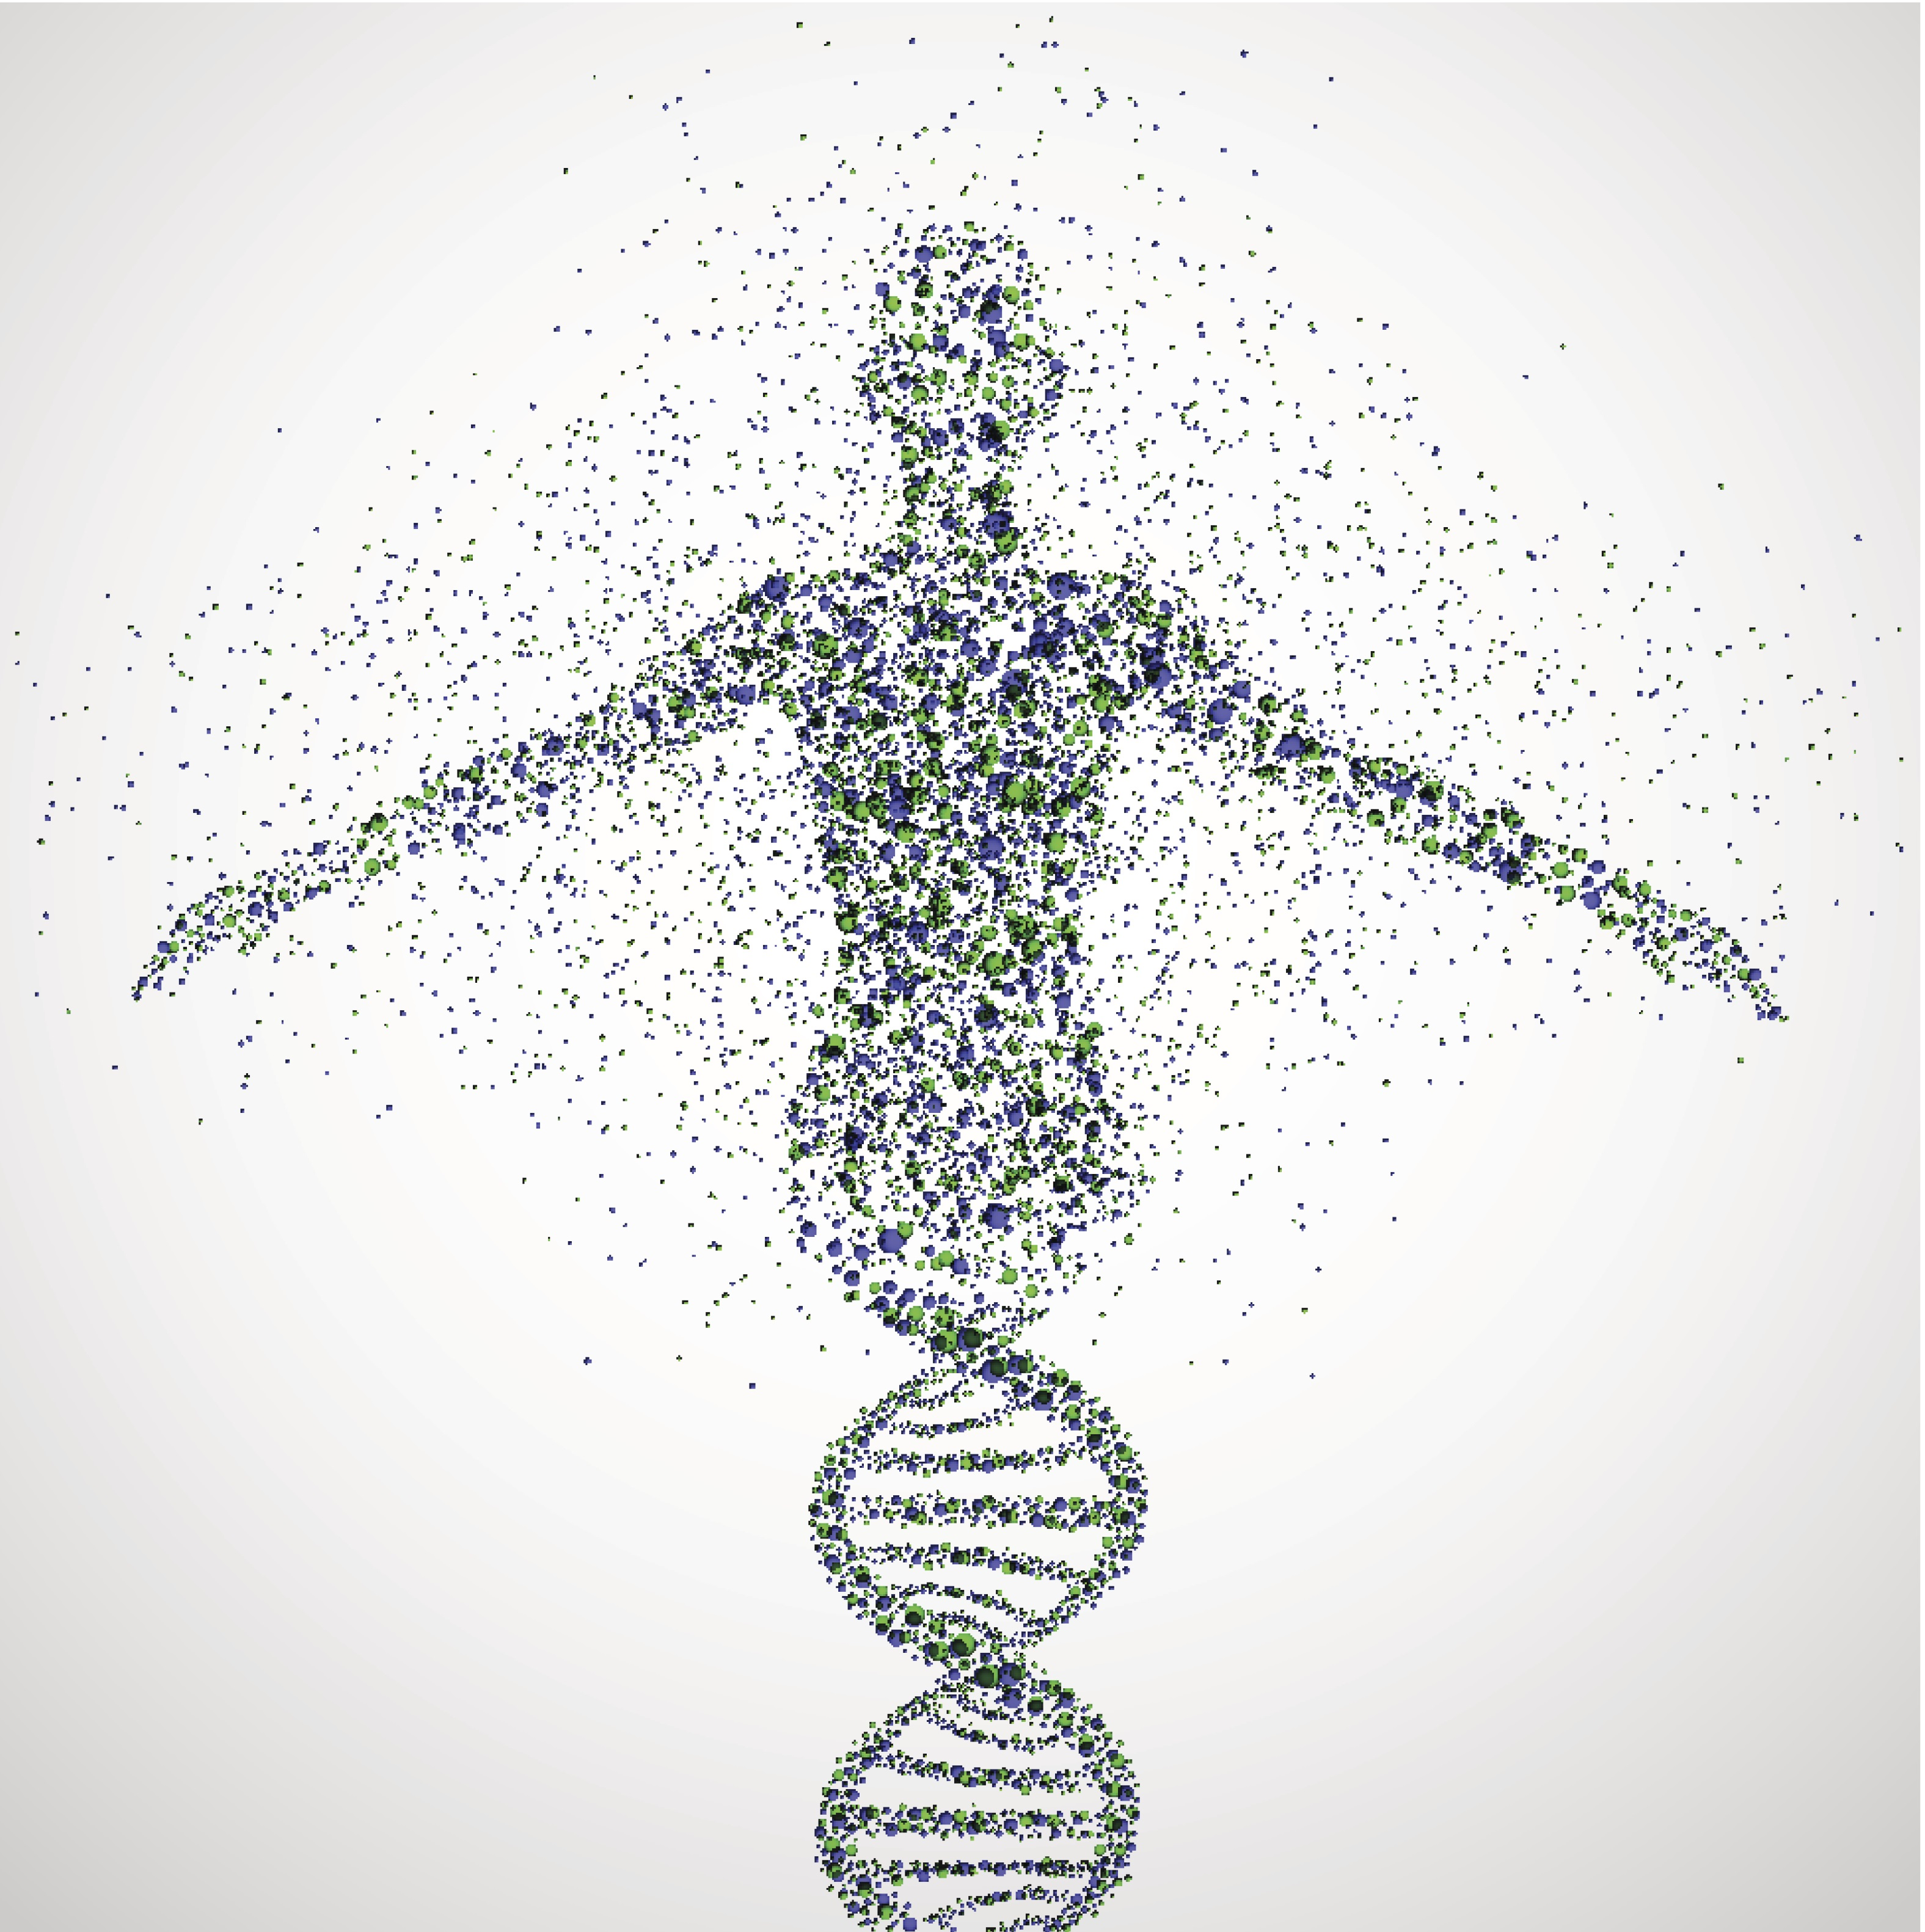 The Human Genome Project is completed. The project, started in 1990, identified all the 20,000 - 25,000 genes in human DNA and determined the sequences of the 3 billion chemical base pairs that make up human DNA.The information gained from the human genome project may lead to revolutionary new ways to diagnose, treat, and prevent thousands of disorders; including cancer.121. US Department of Energy: Office of Science. http://genomics.energy.gov/2. National Institutes of Health; National Human Genome Research Institute. www.genome.gov